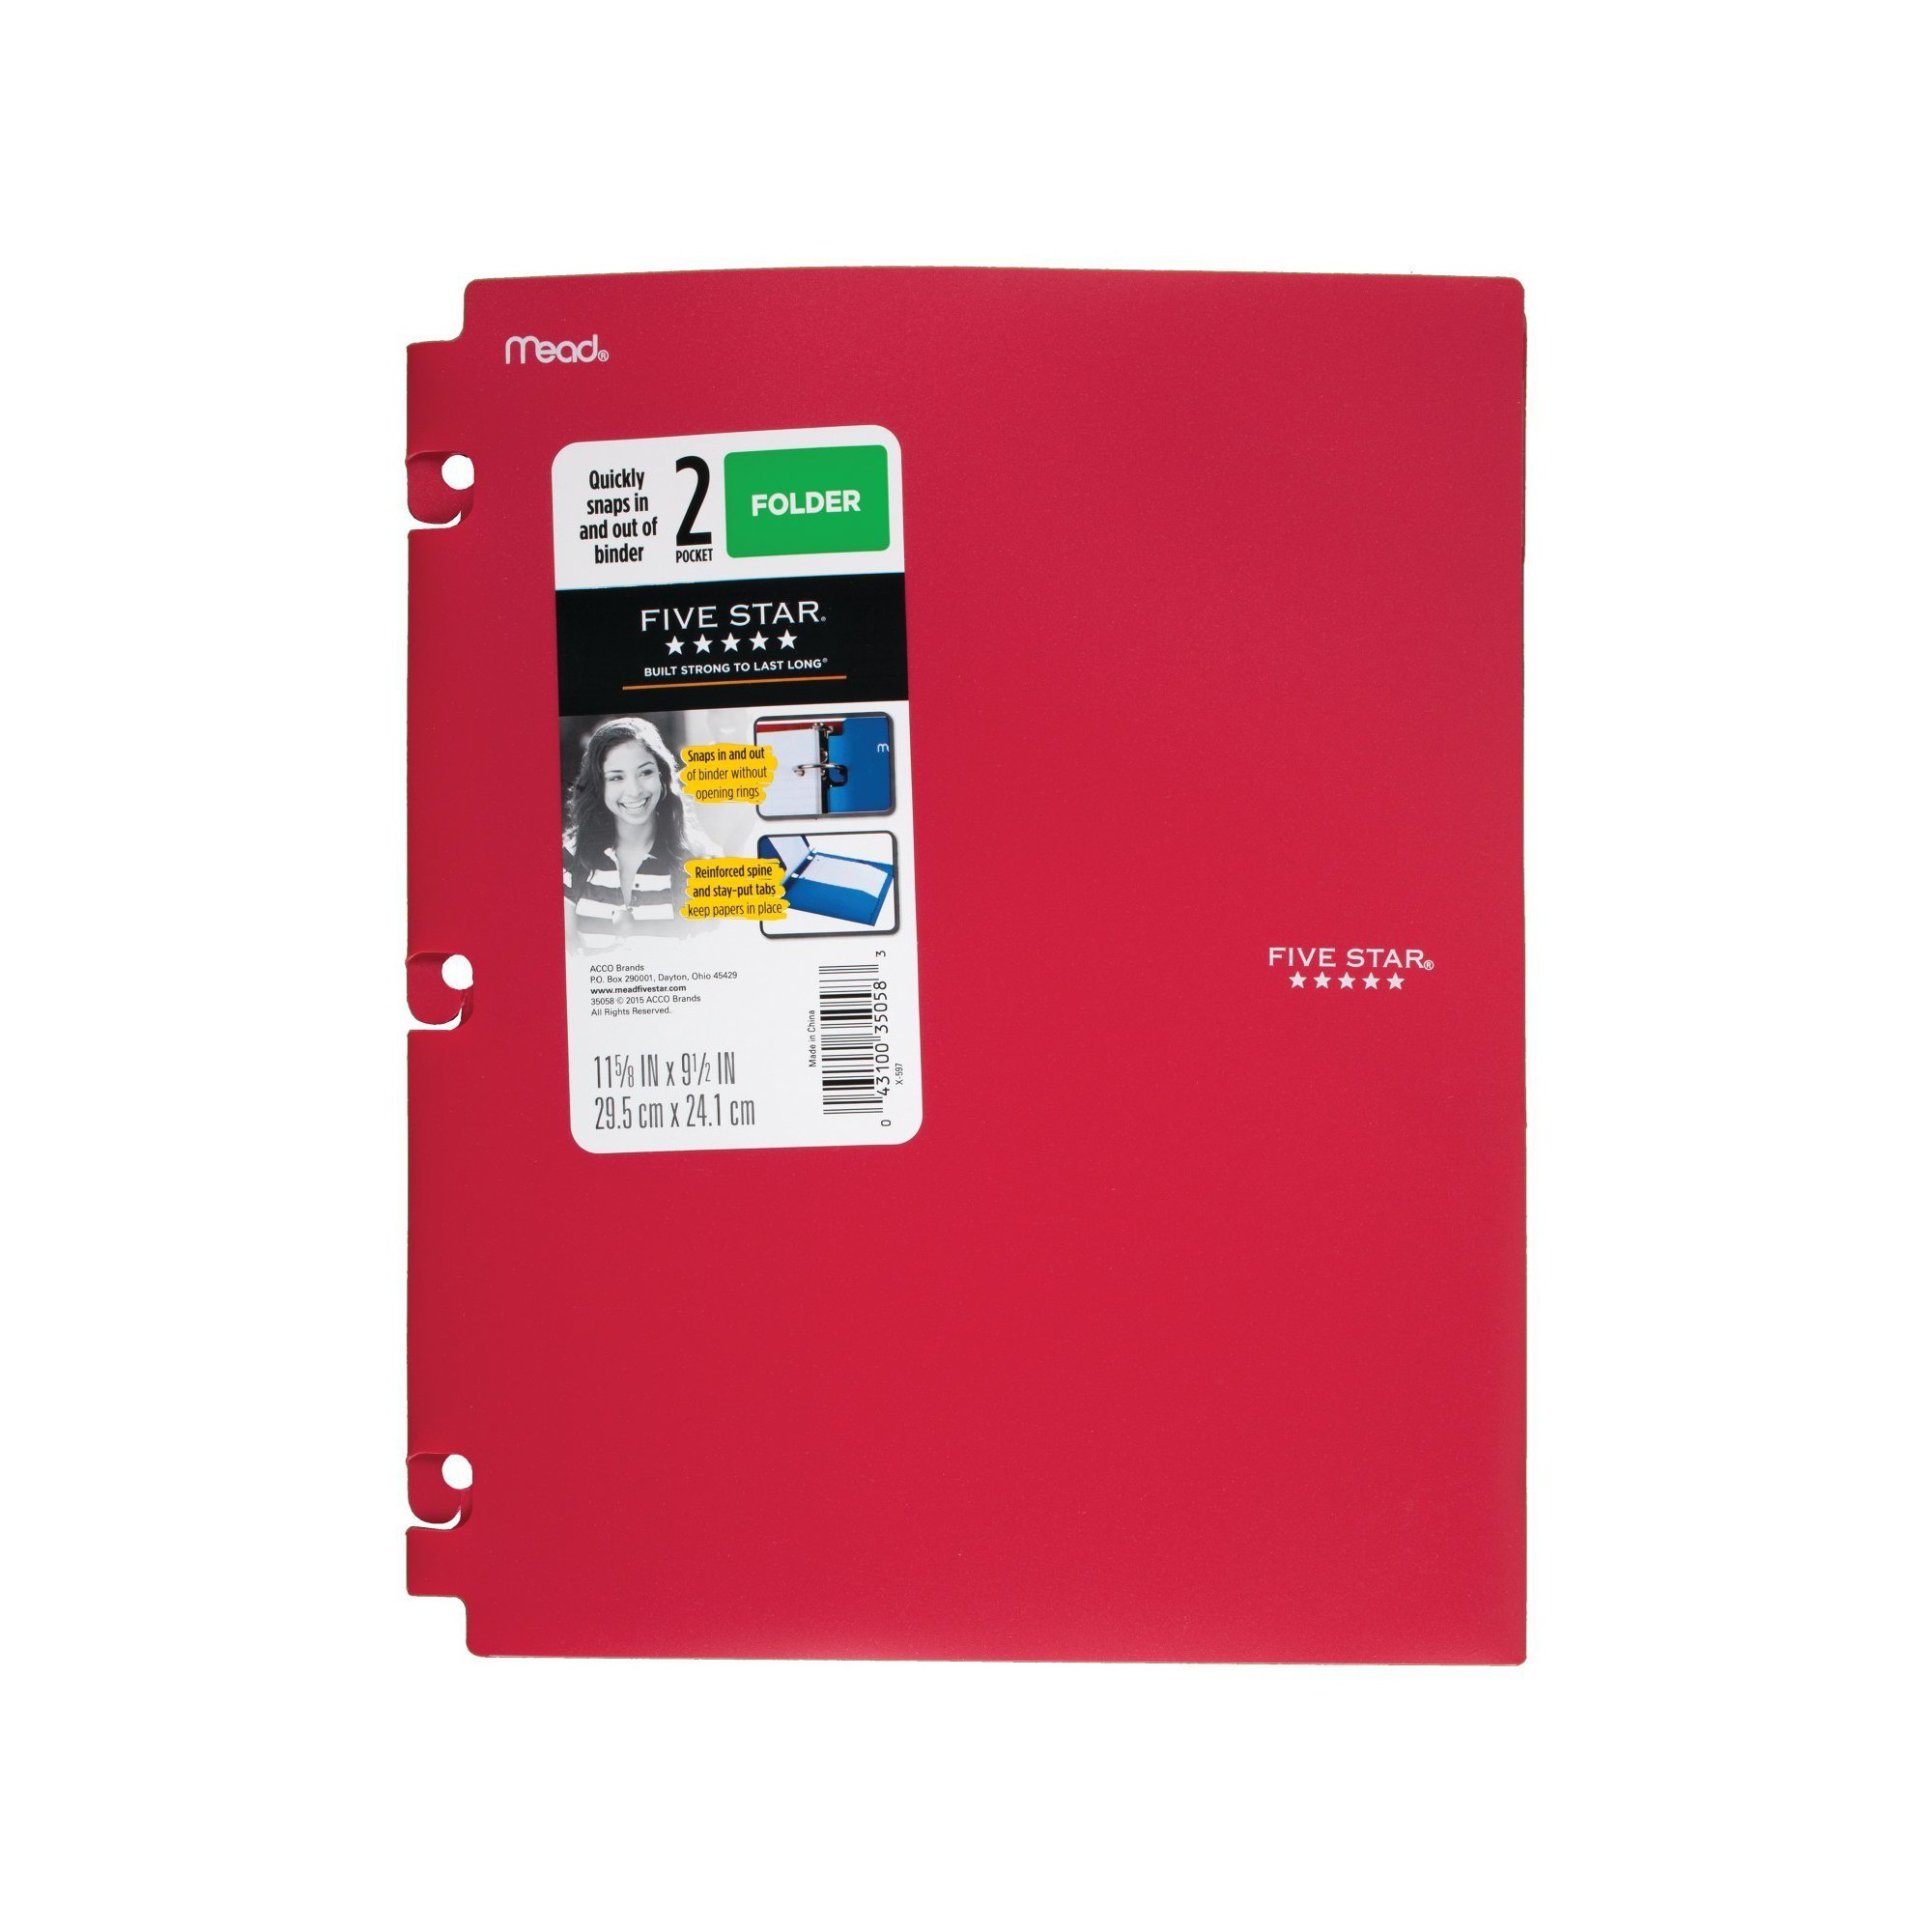 Five Star Plastic Folder Snap-In Binder 2 Pocket Red